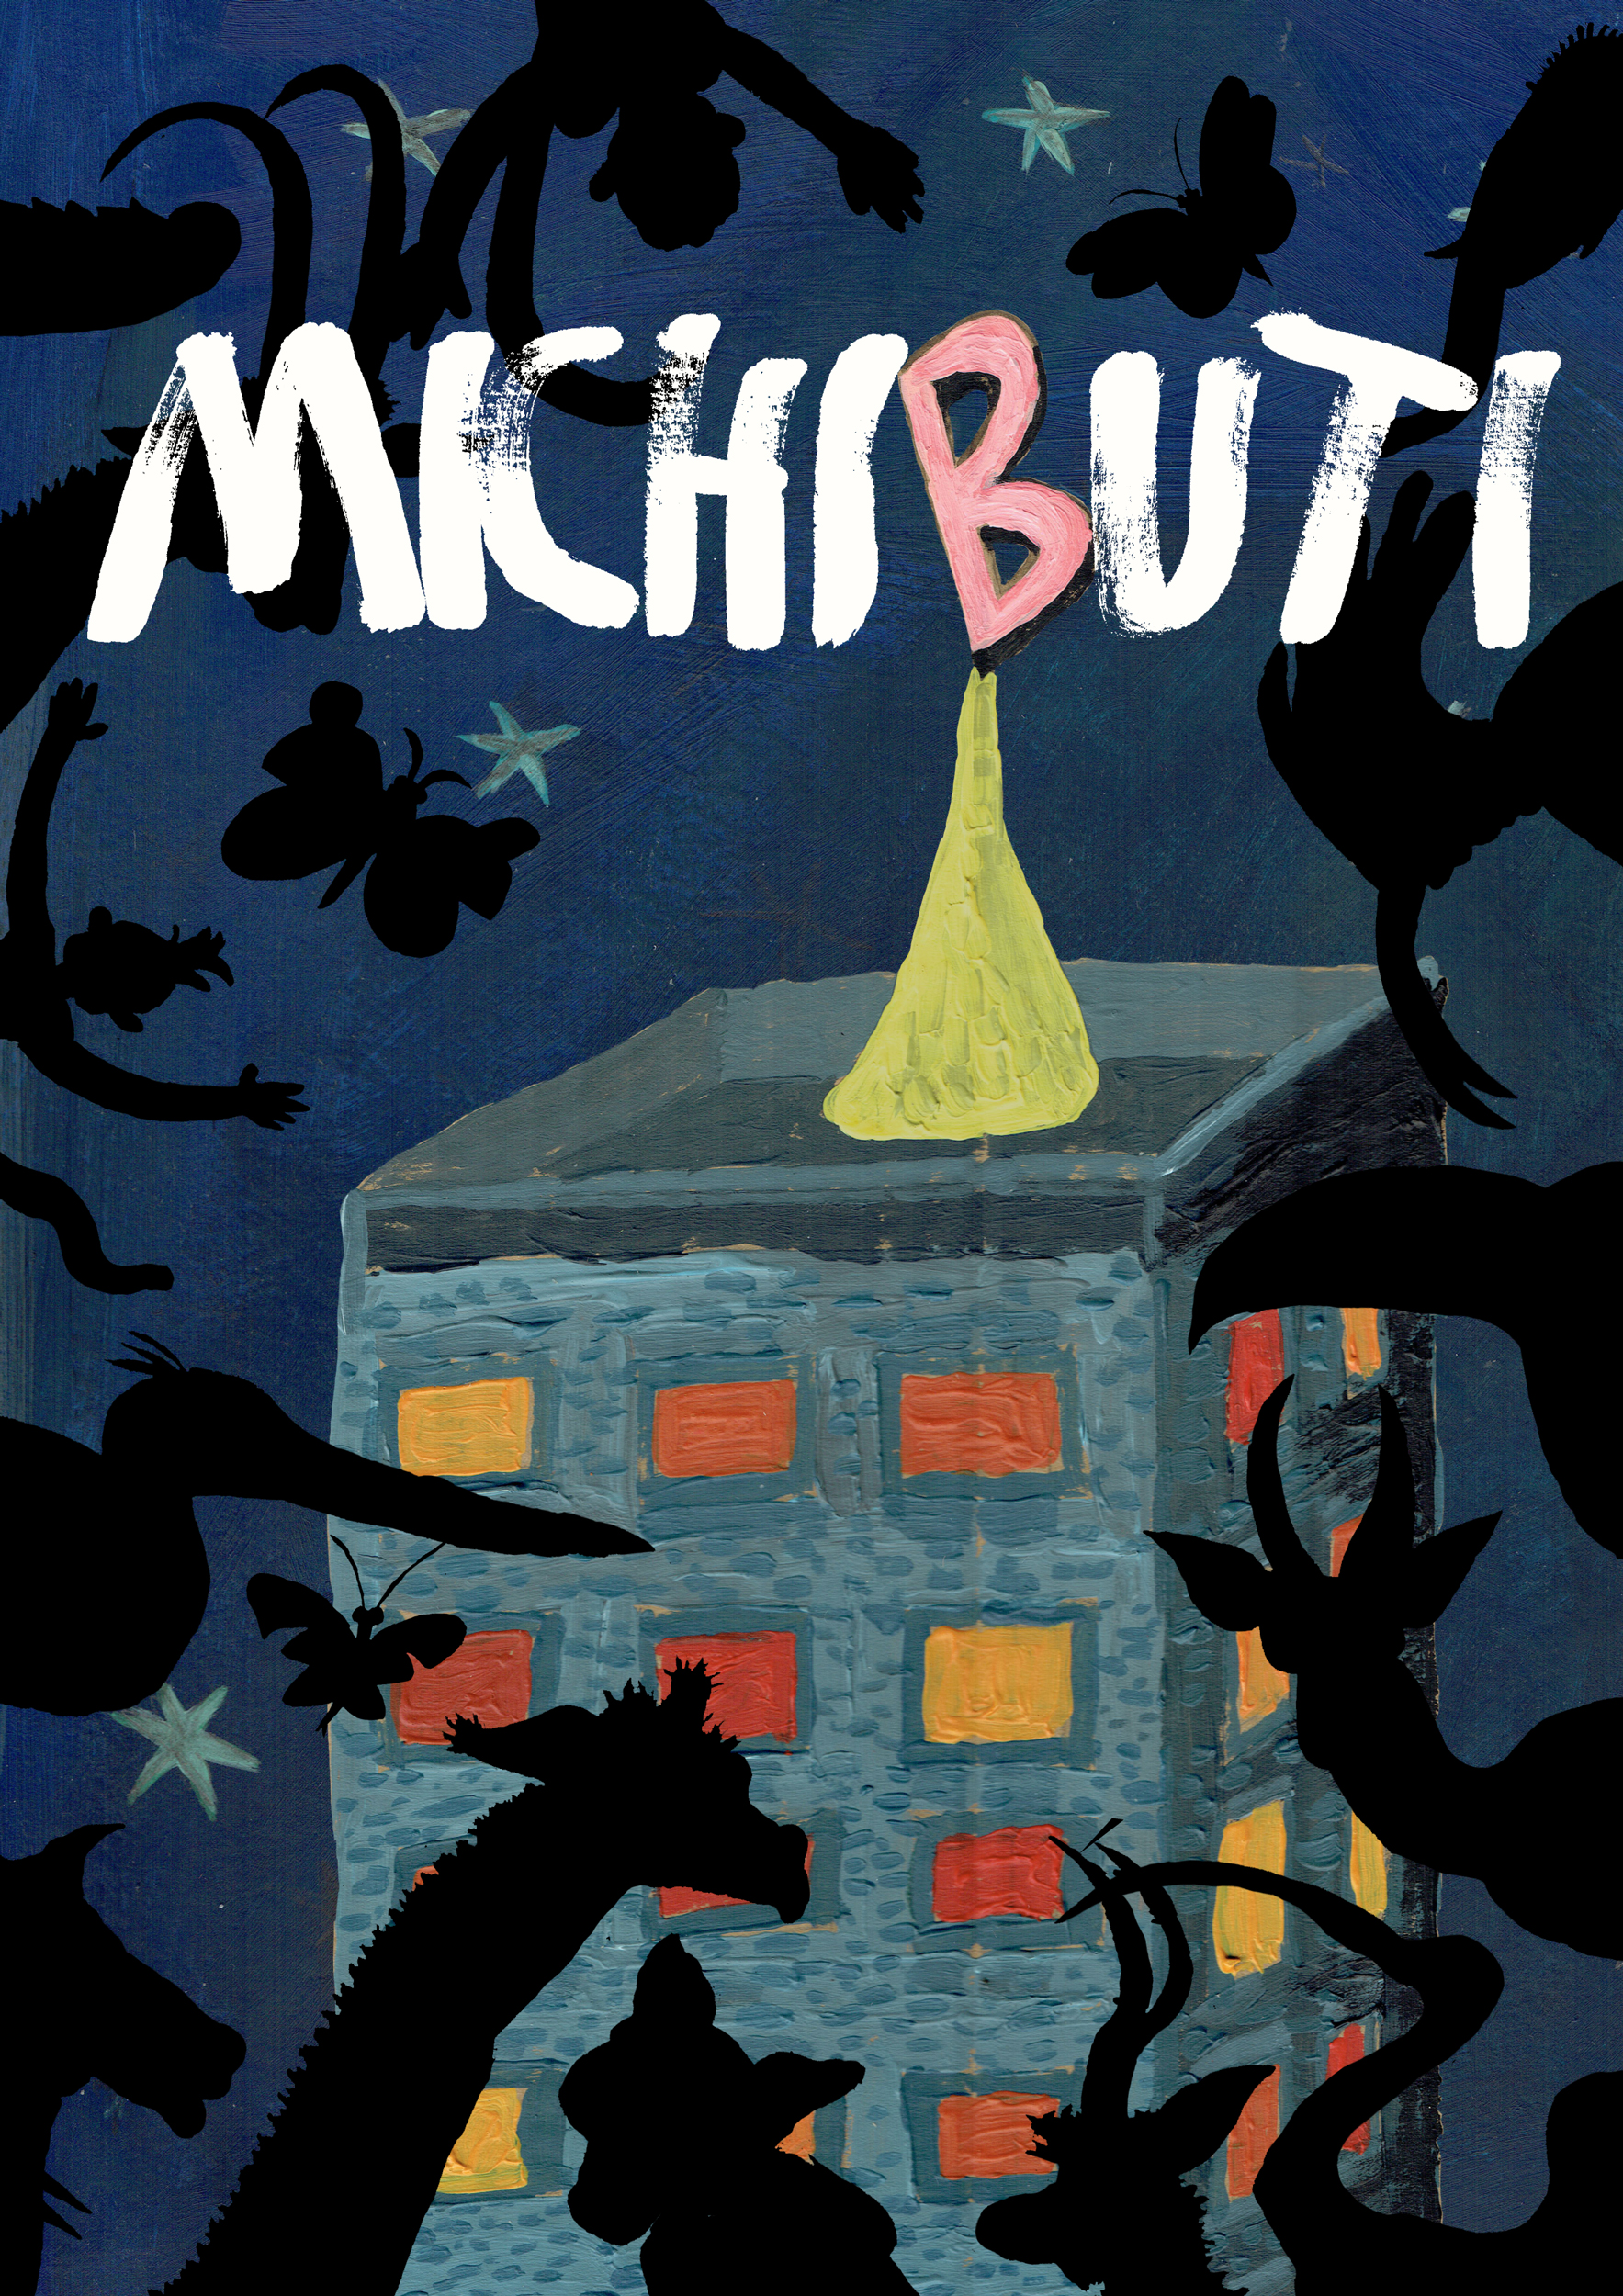 The front cover of  Michibuti  shows Blobfish Tower - that's why there's a big pink B at the top.